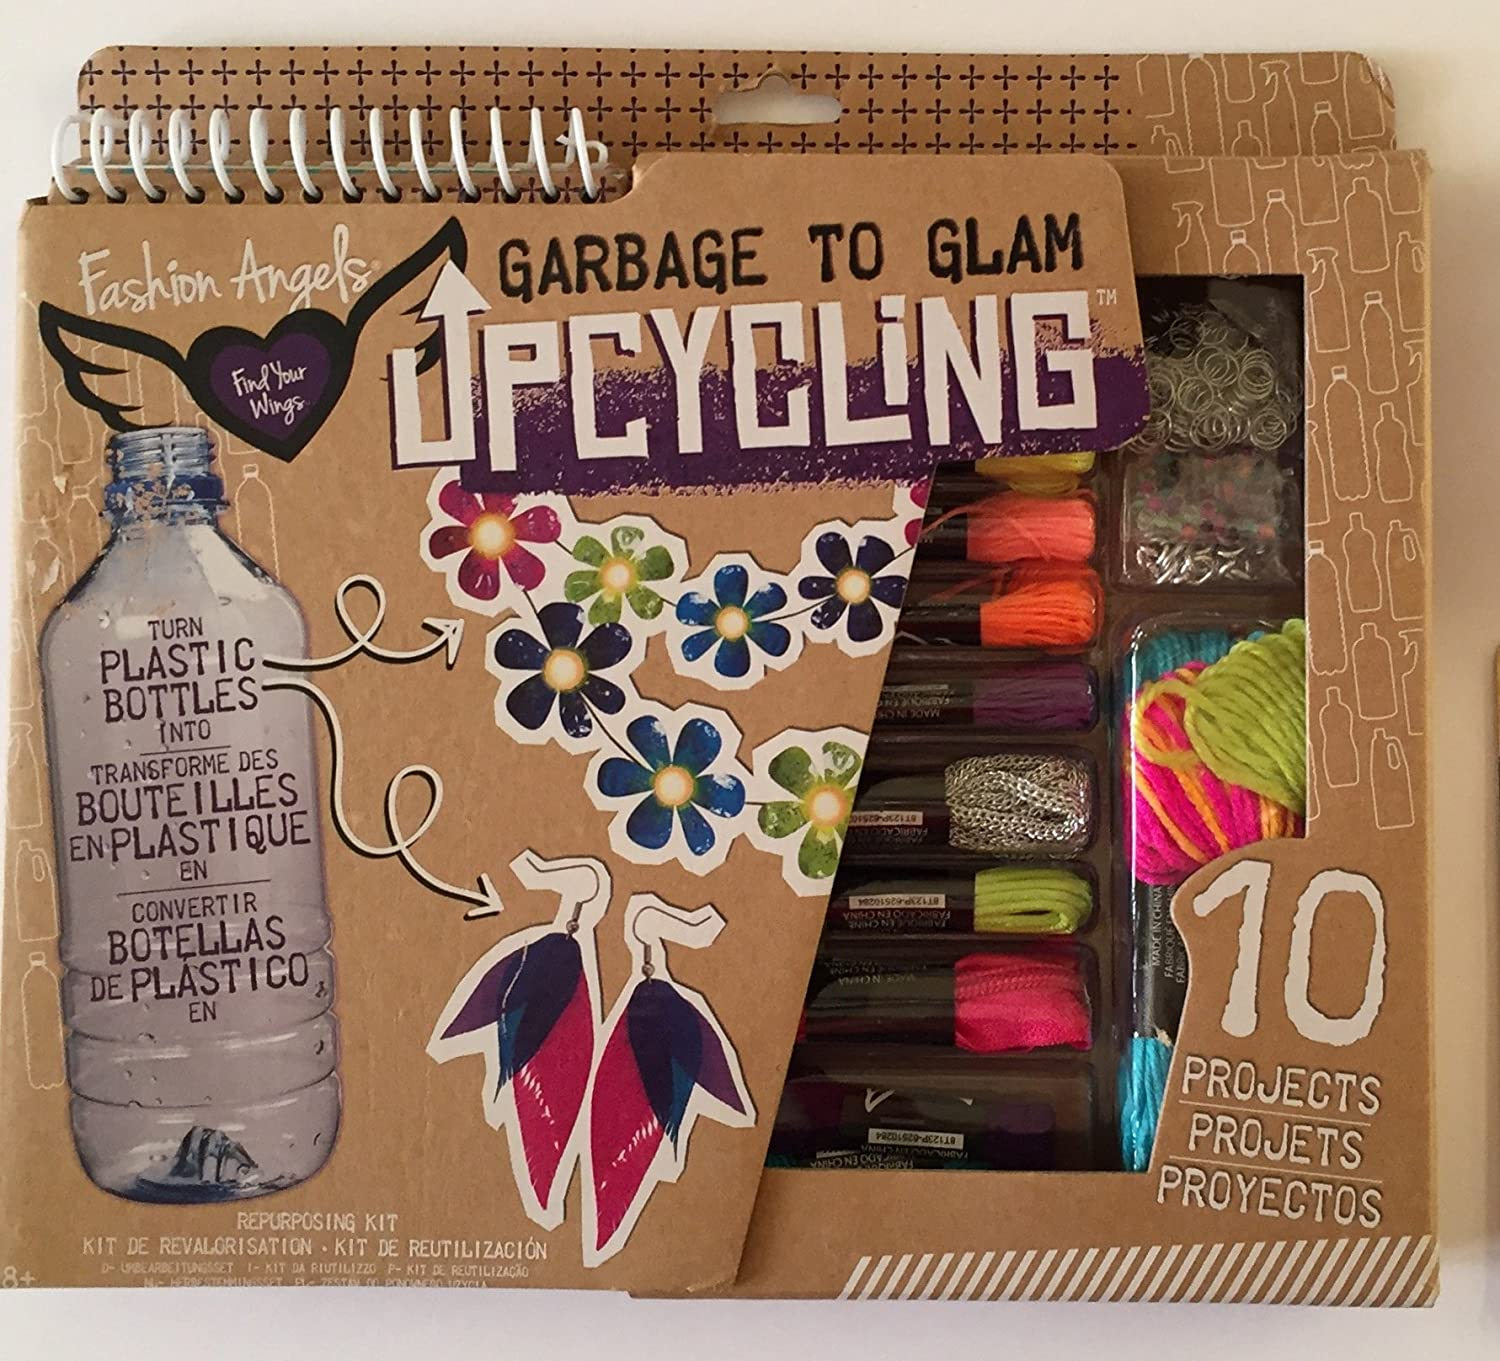 Amazon.com: Fashion Angels: Garbage to Glam Upcycling Design Kit, 10 Projects with Plastic Bottles, Clear Plastic Round Bead Case/Holder Plus a Pair of ...